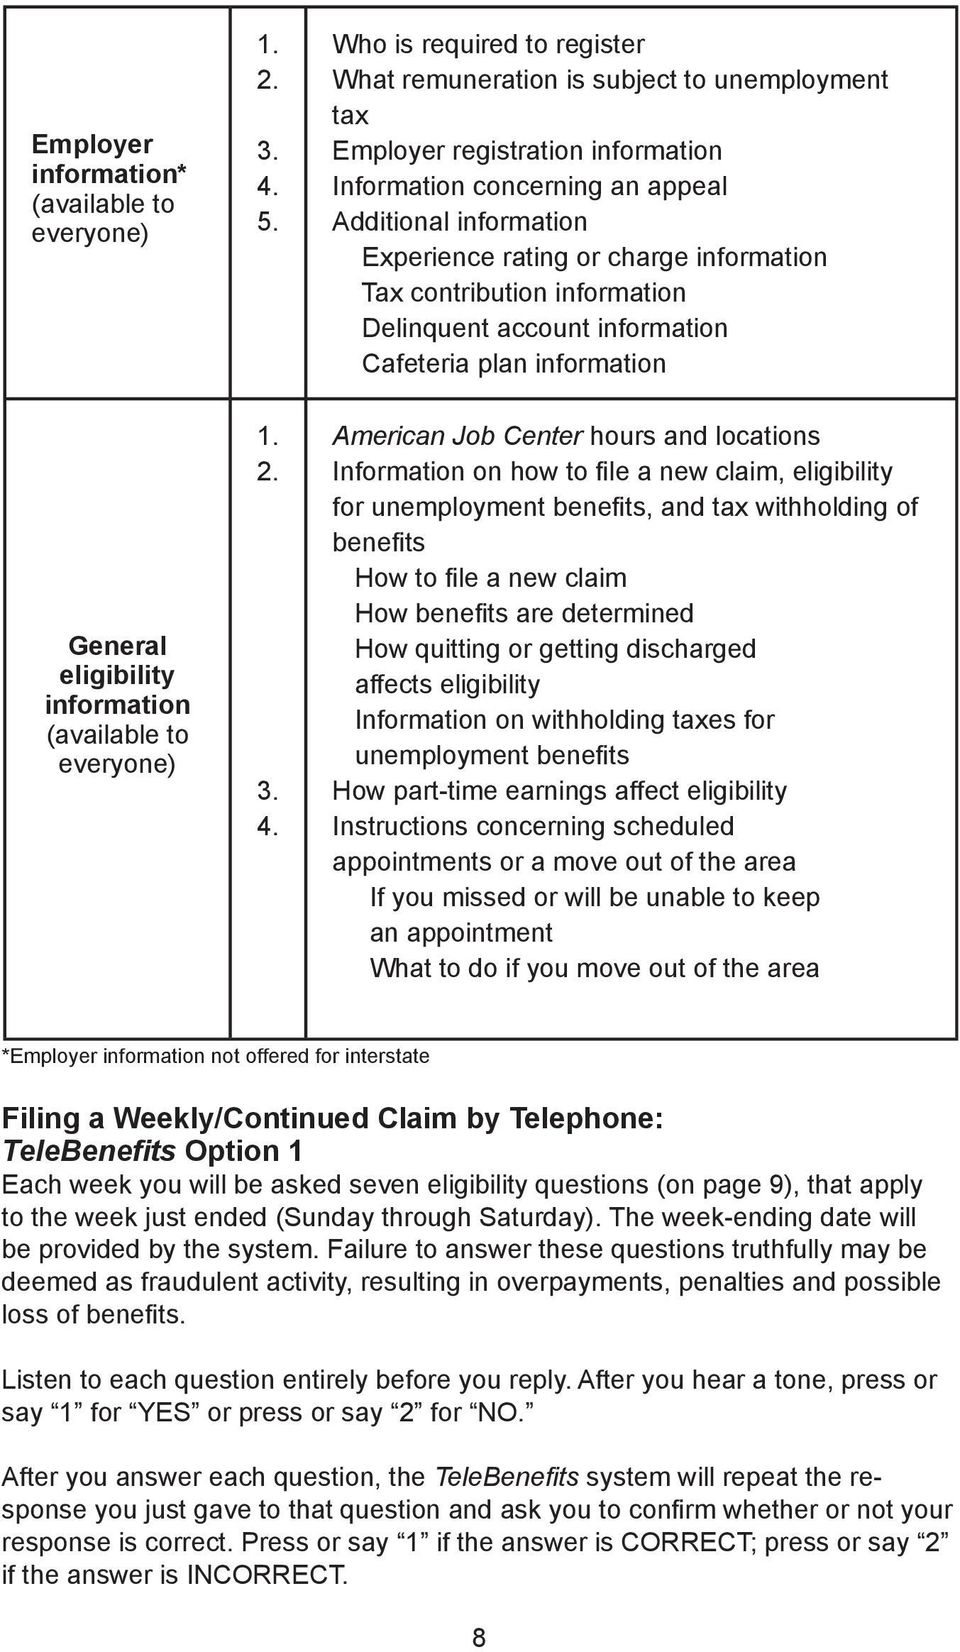 Unemployment Insurance A Guide To Collecting Benefits In The State